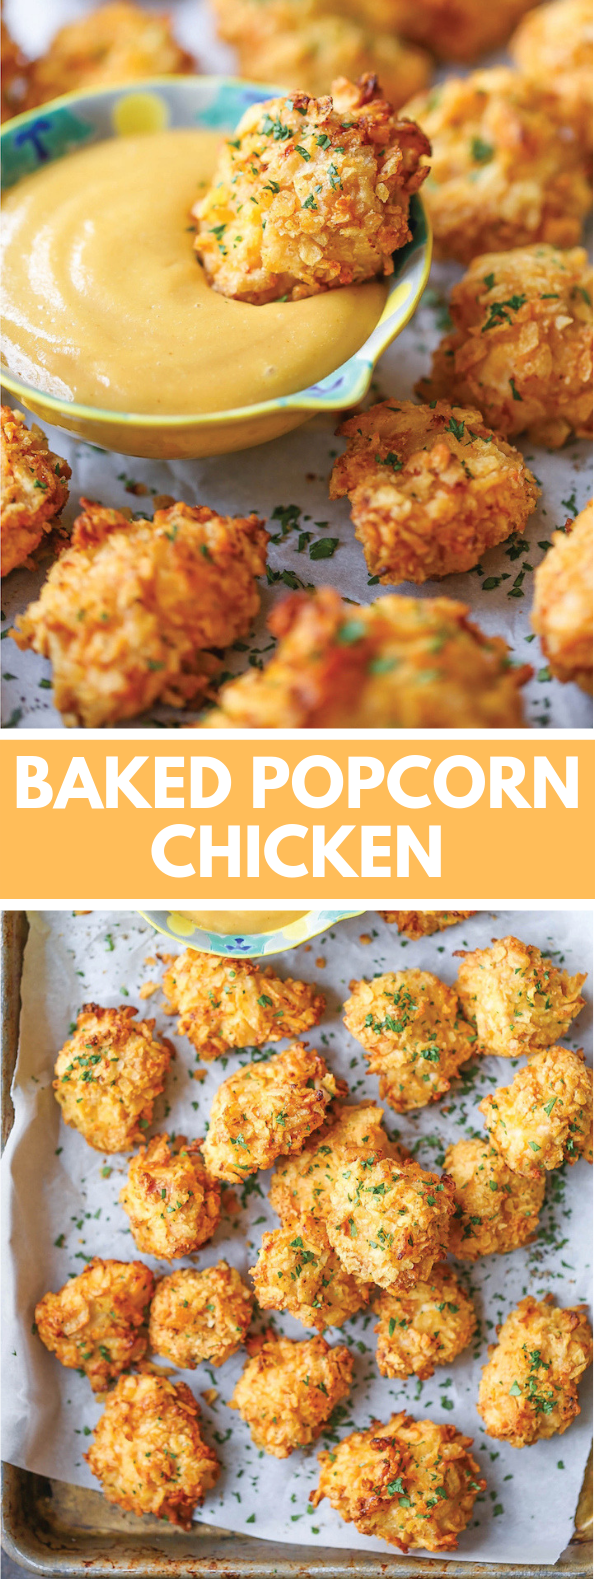 BAKED POPCORN CHICKEN #snacks #appetizer